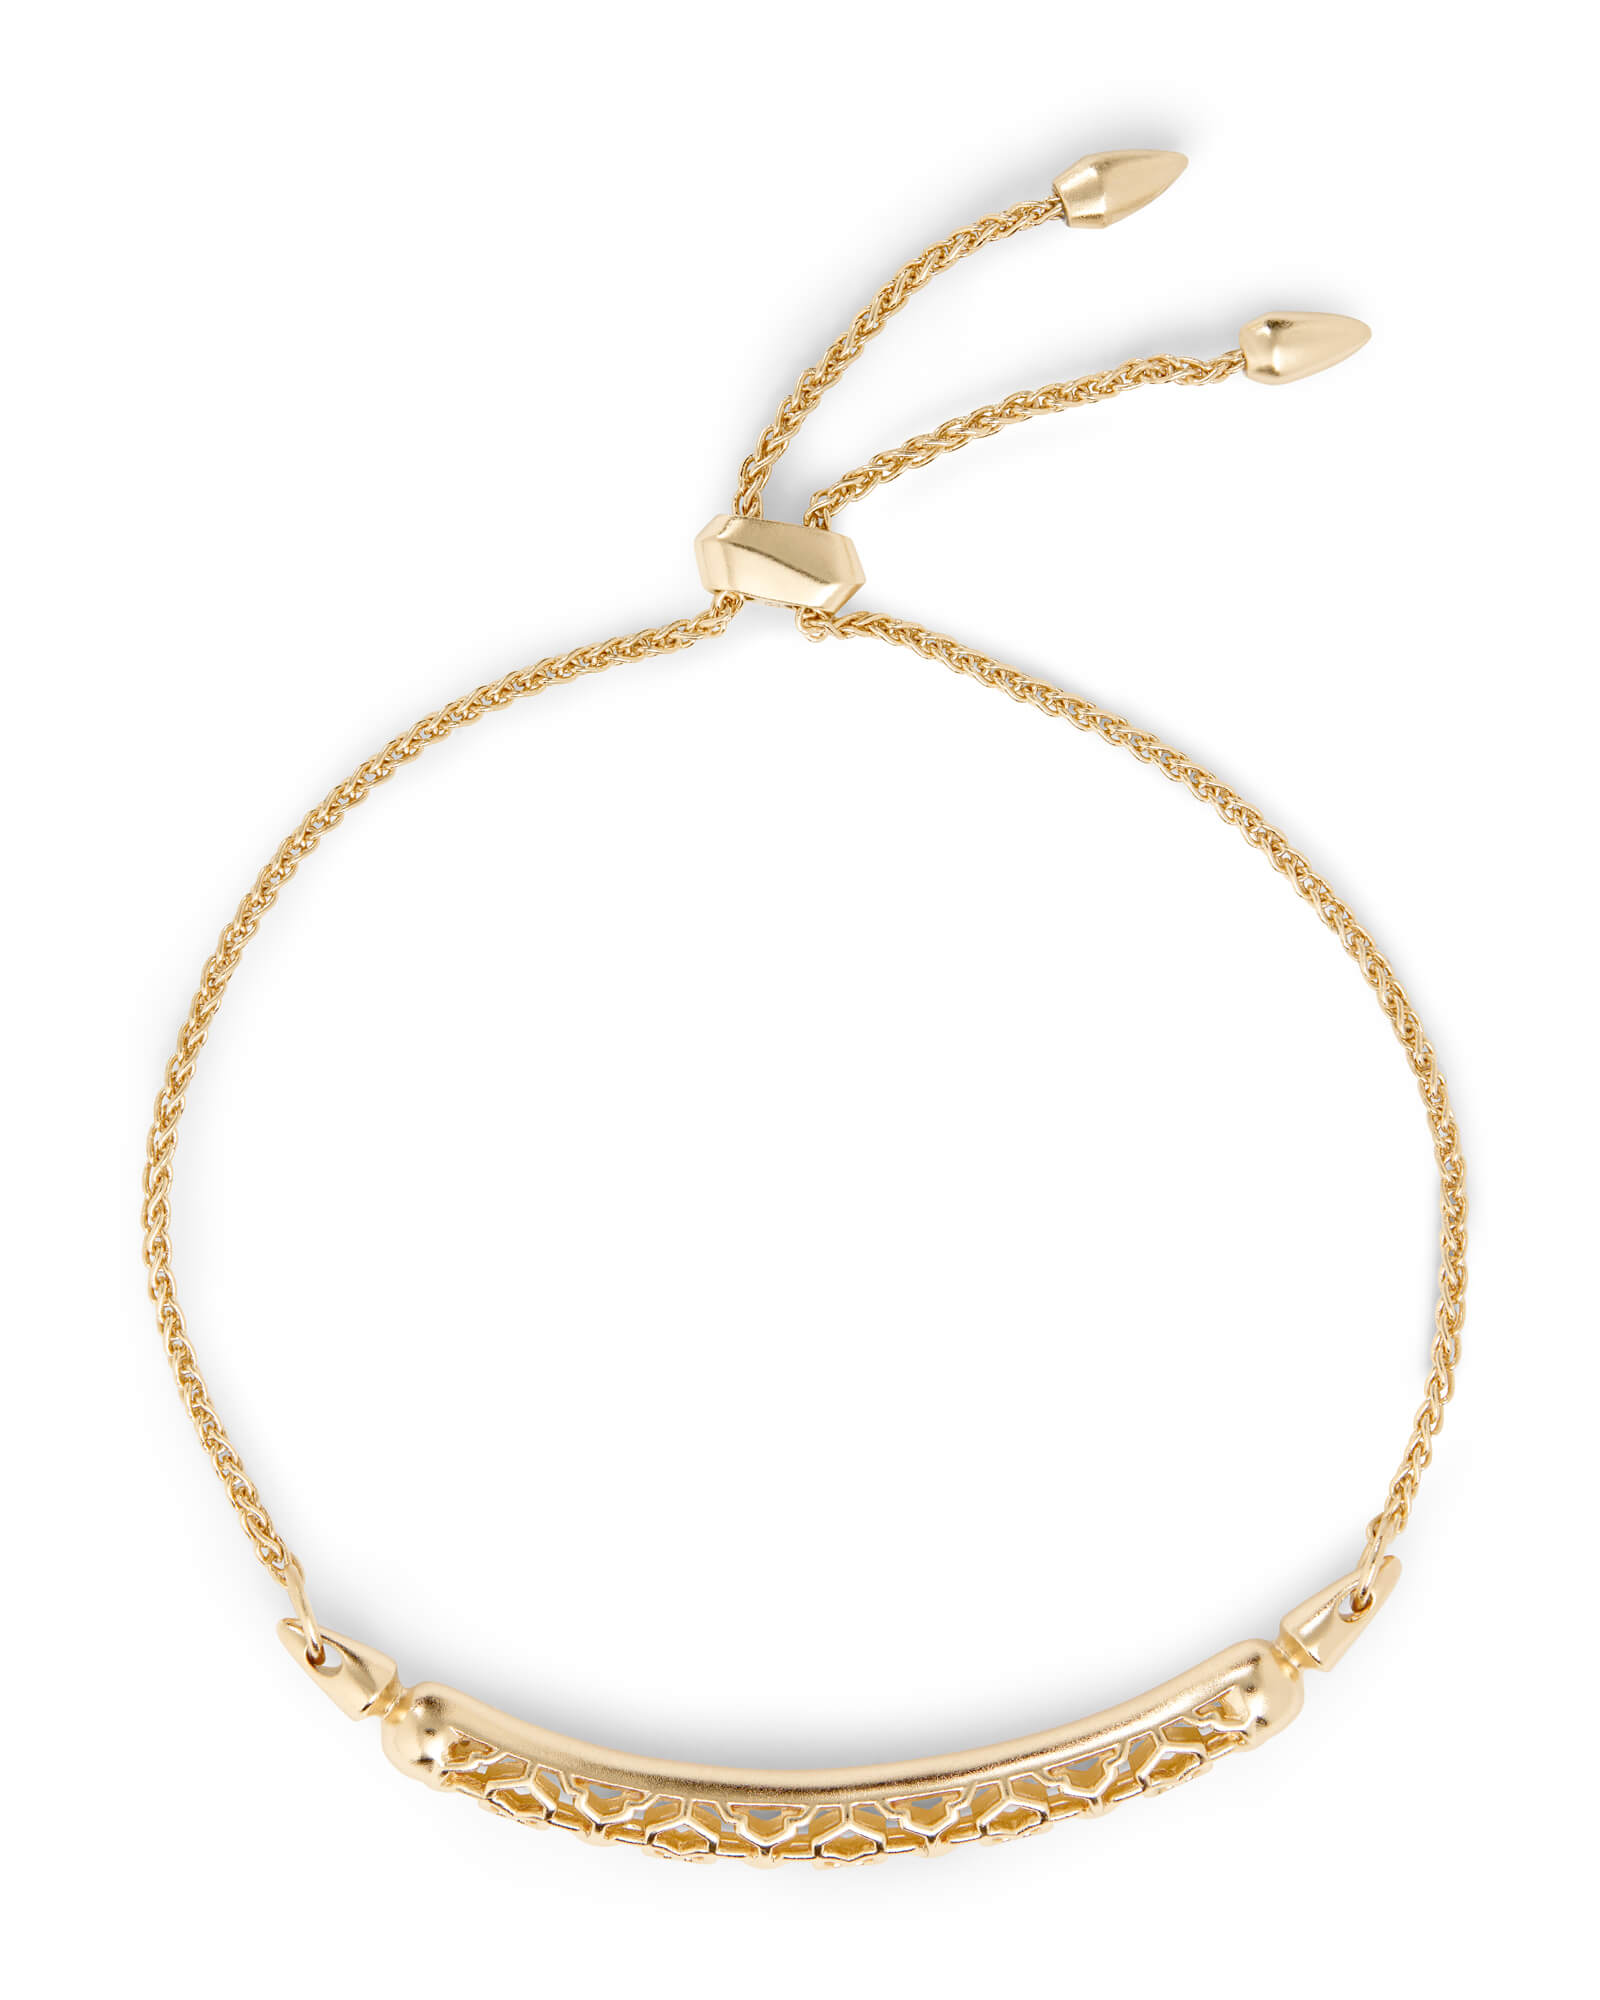 Gilly Gold Link Bracelet in Gold Filigree